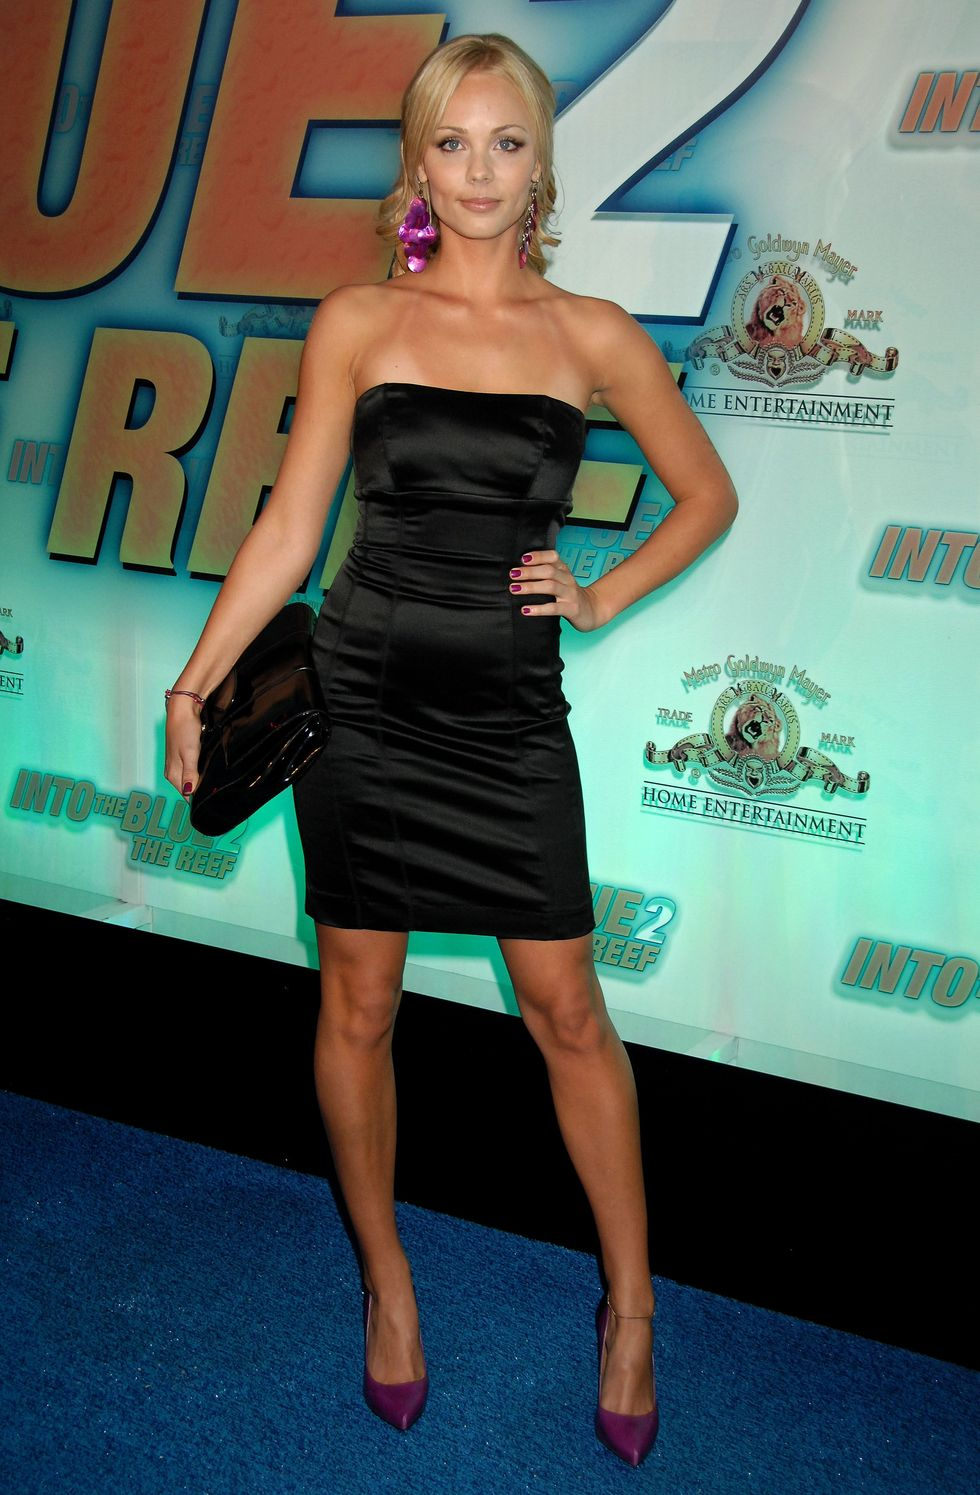 laura-vandervoort-into-the-blue-2-the-reef-premiere-in-beverly-hills-06